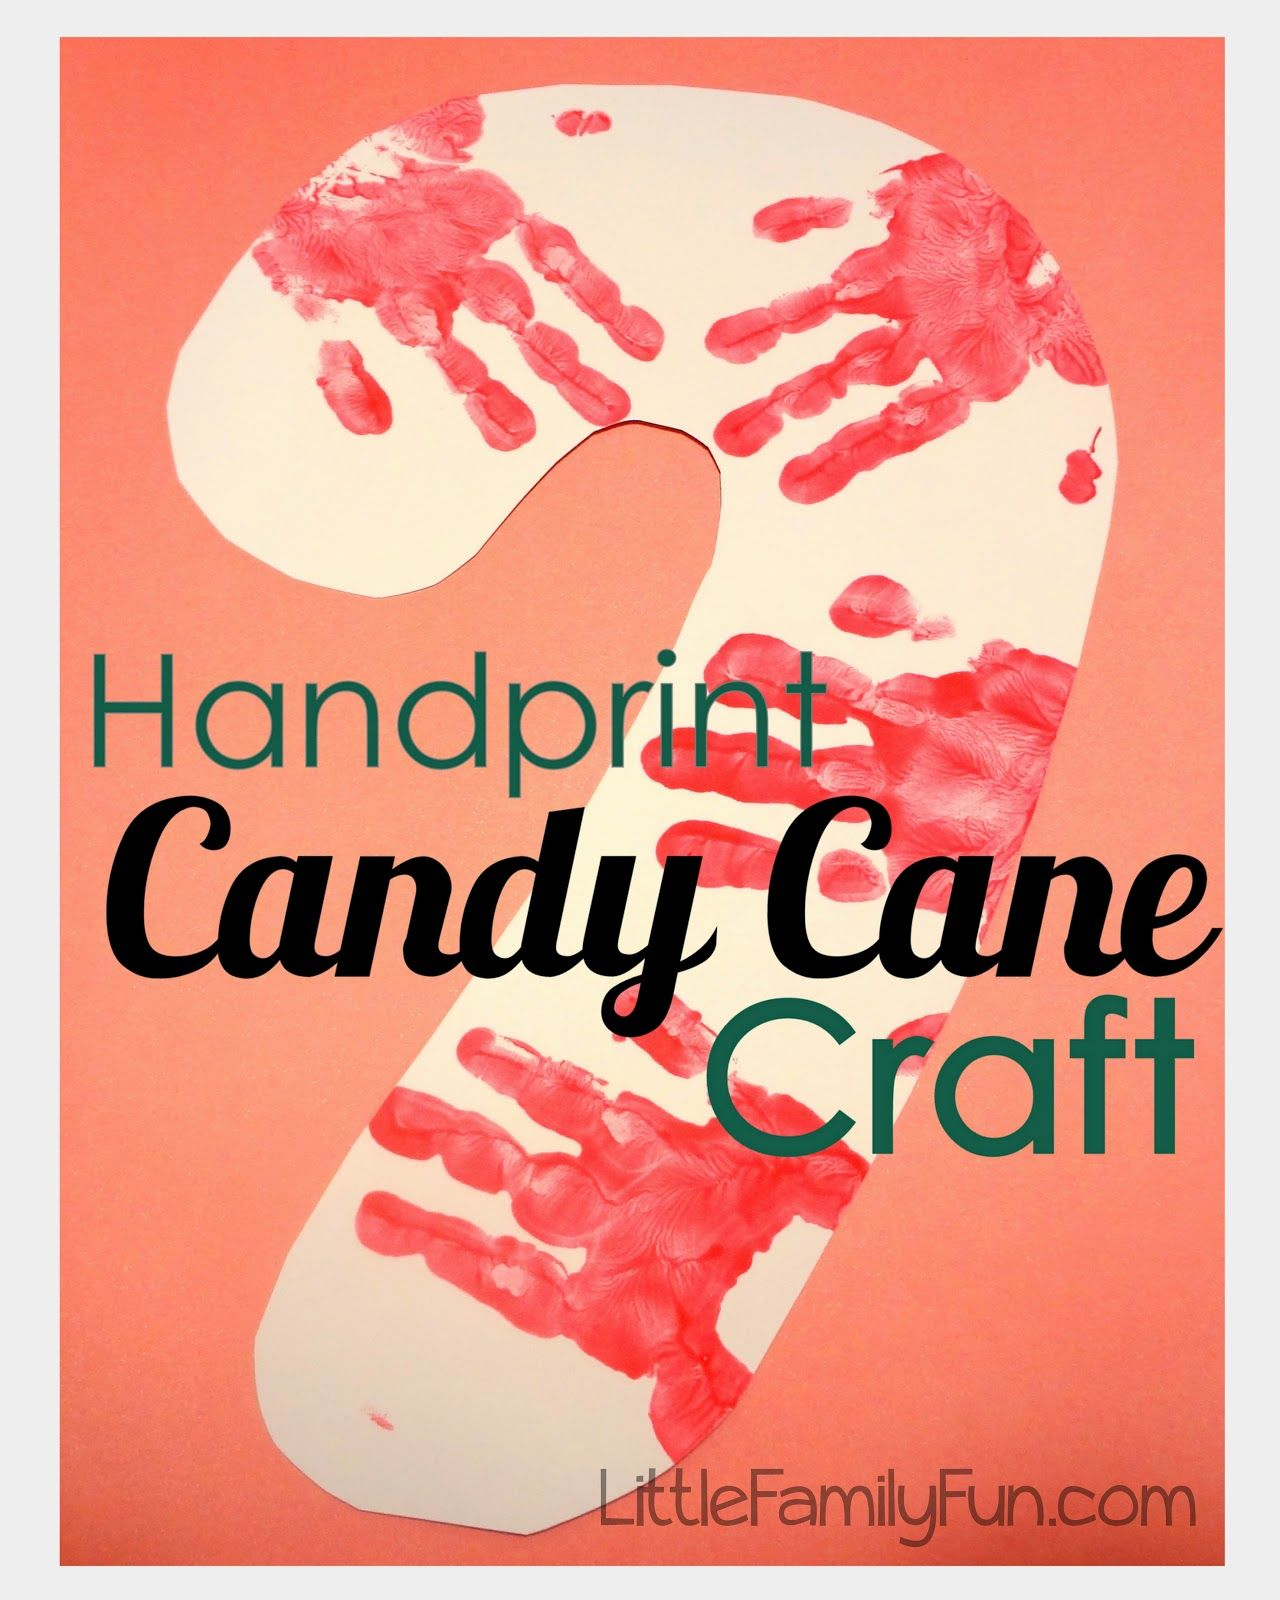 Handprint Candy Cane Craft